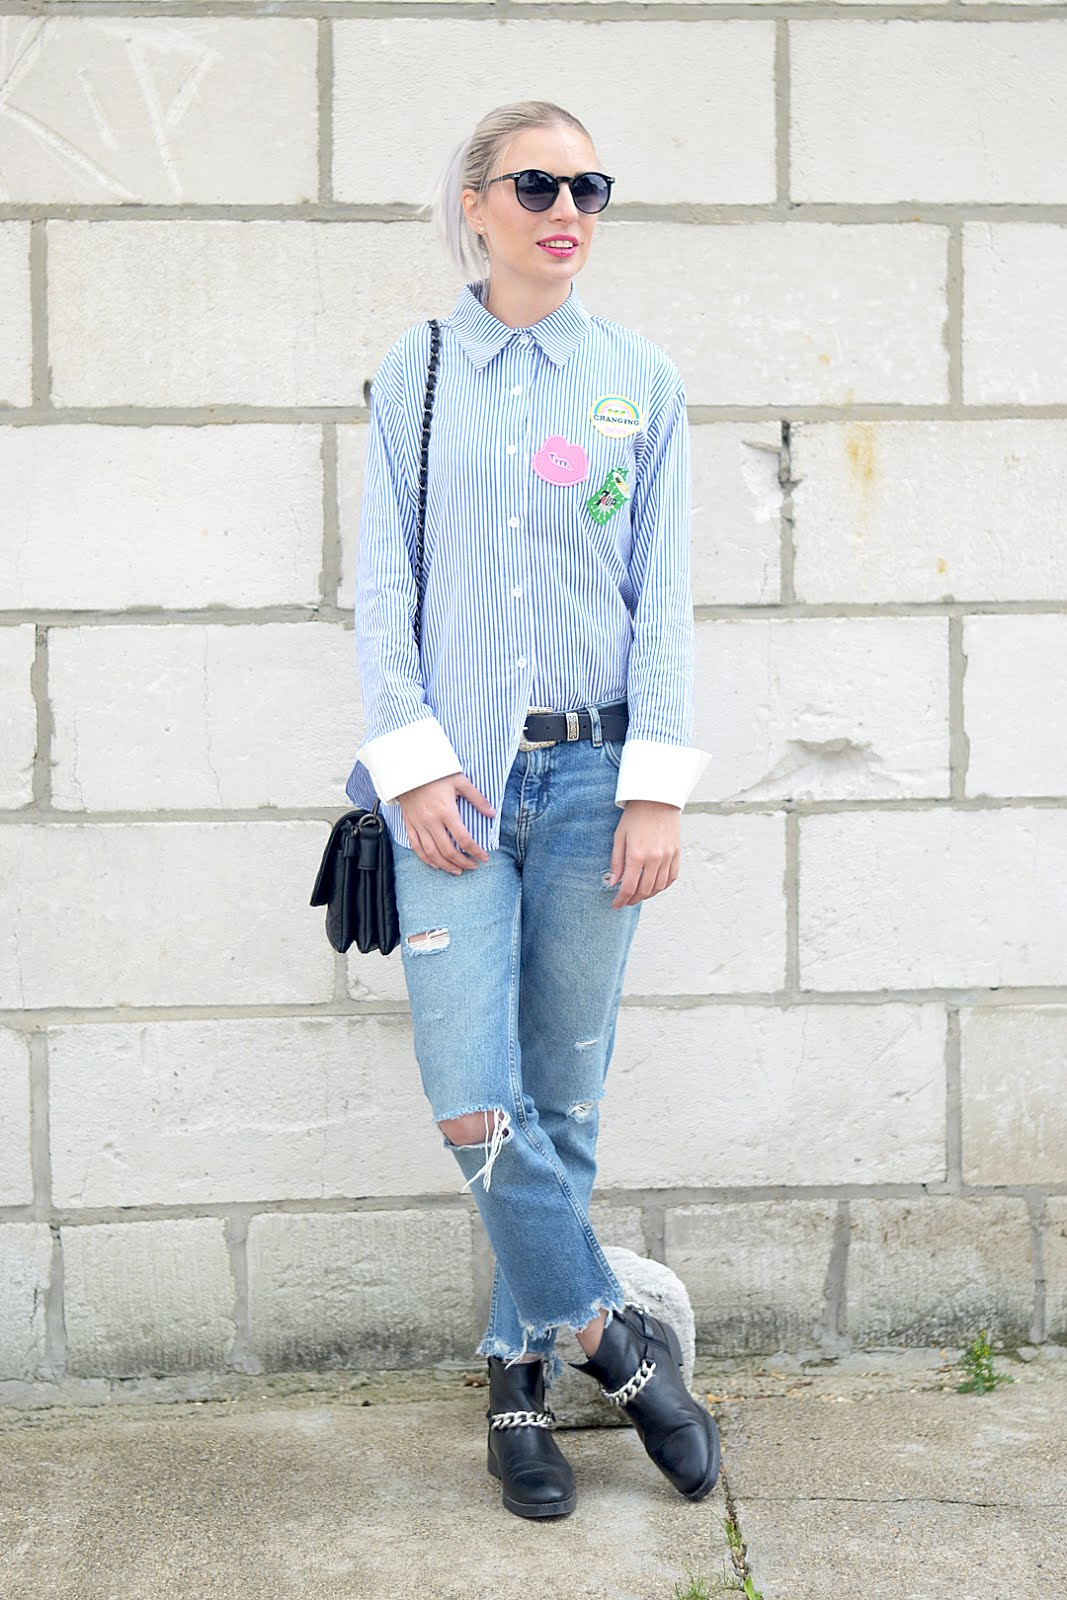 Blue striped shirt, patches, yaz, marc b bags, chain boots, ripped jeans